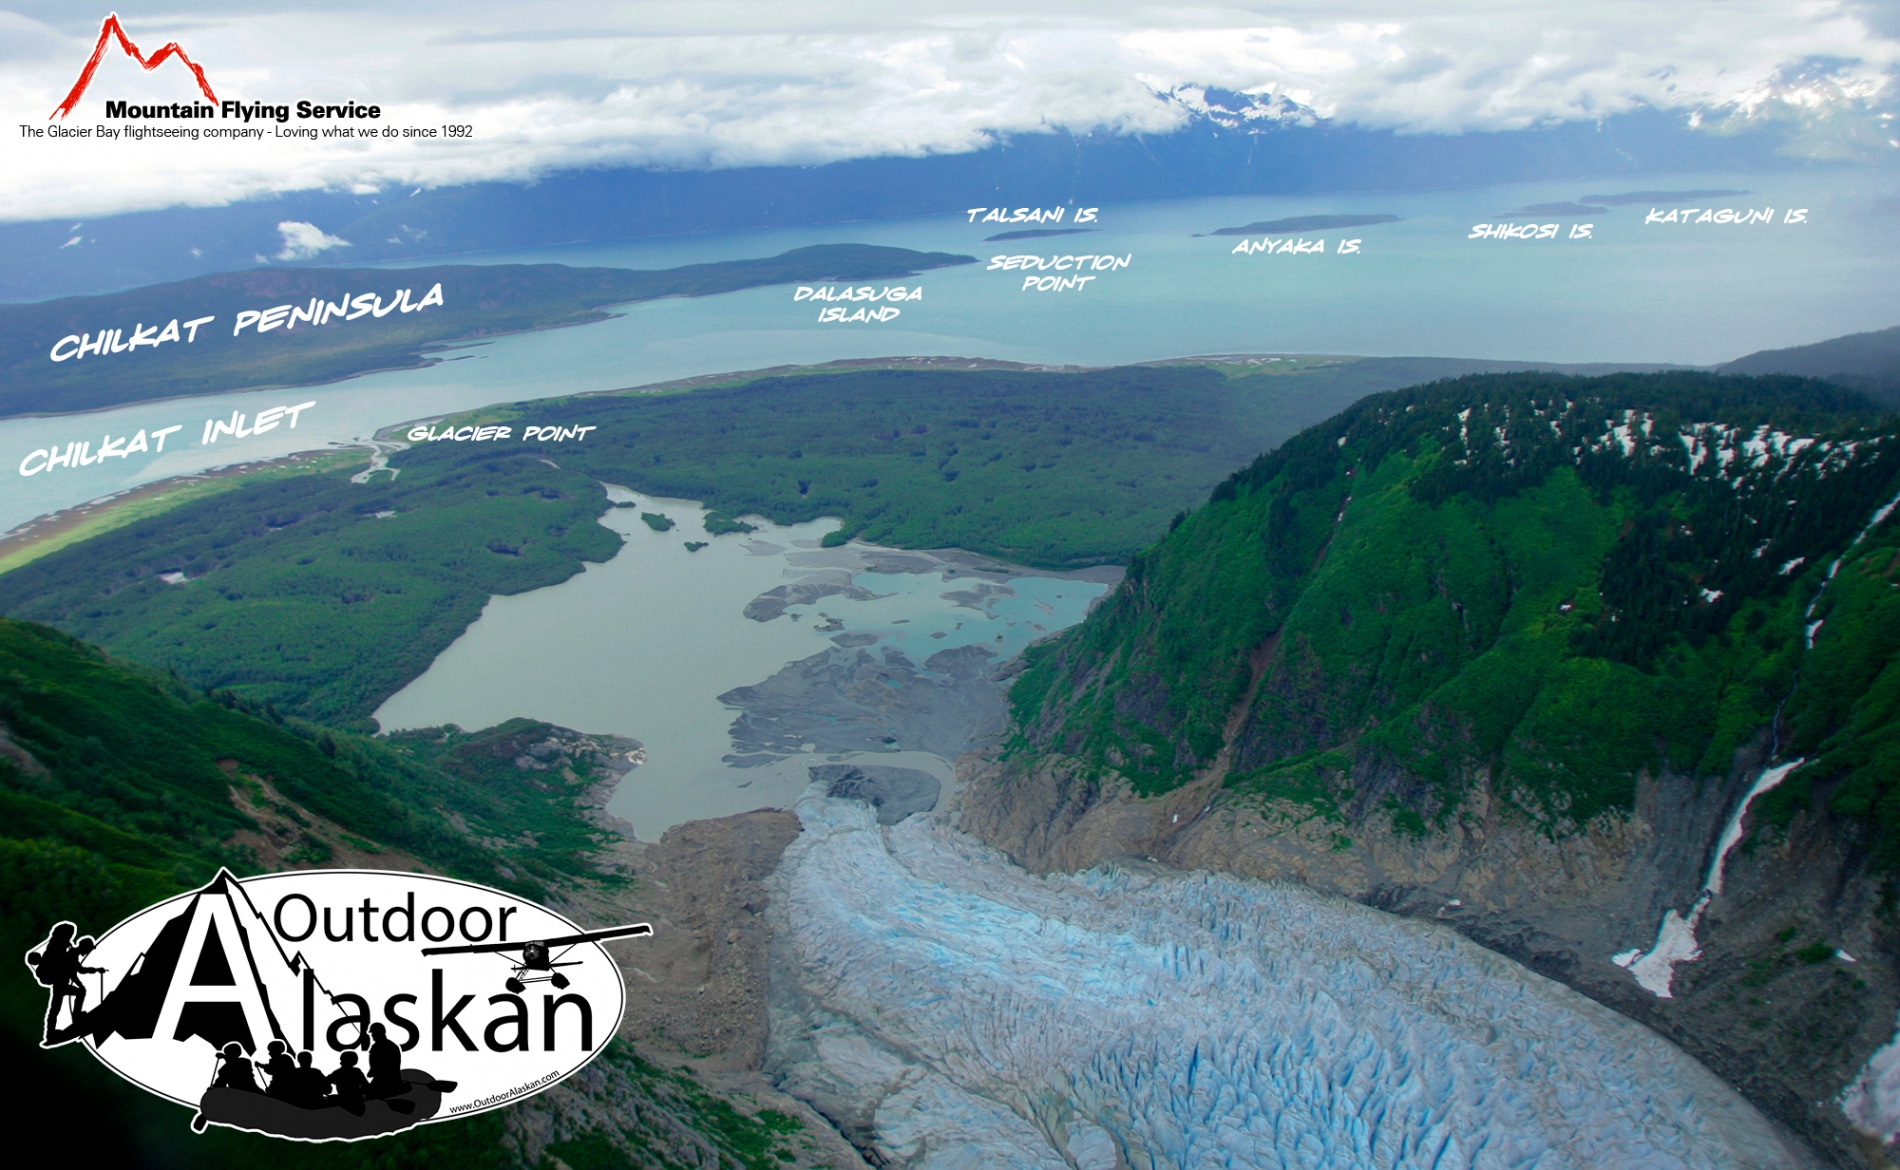 Looking down the Davidson Glacier out at Chilkat Inlet, Lynn Canal, Chilkat Peninsula, and the Chilkat Islands.